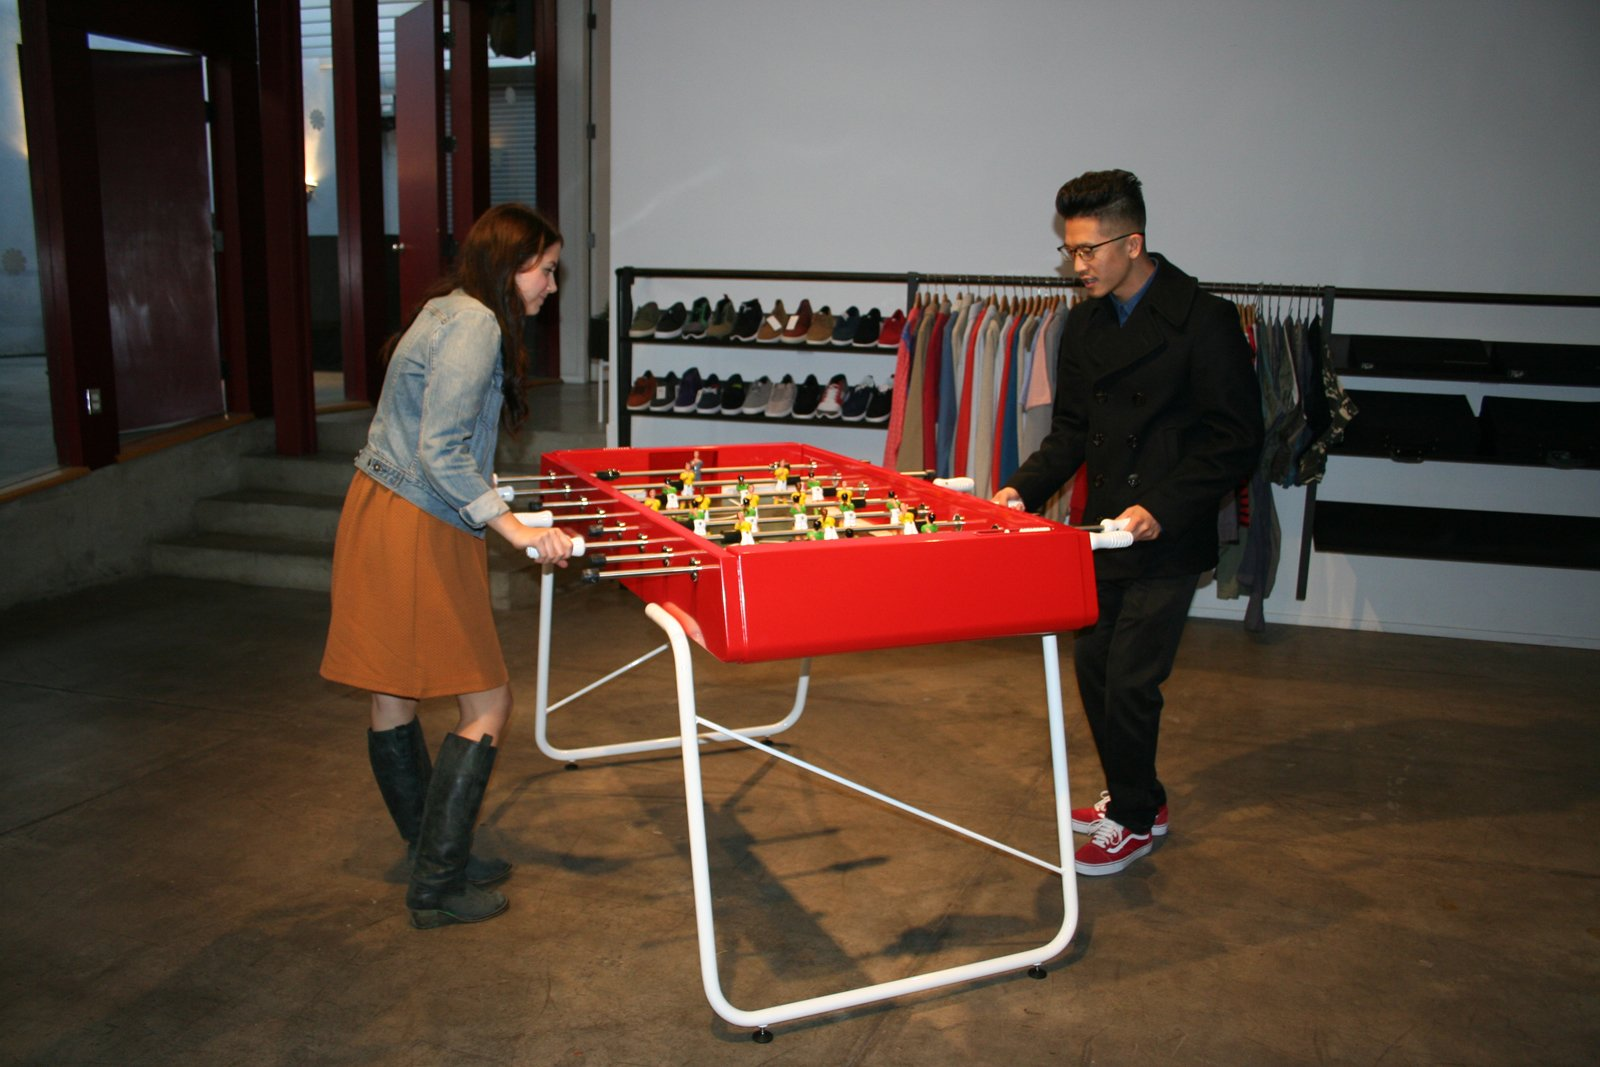 Guests at the event face off on one of RS Barcelona's new foosball tables.  Photo 2 of 4 in Roger Gastman at Ford & Ching